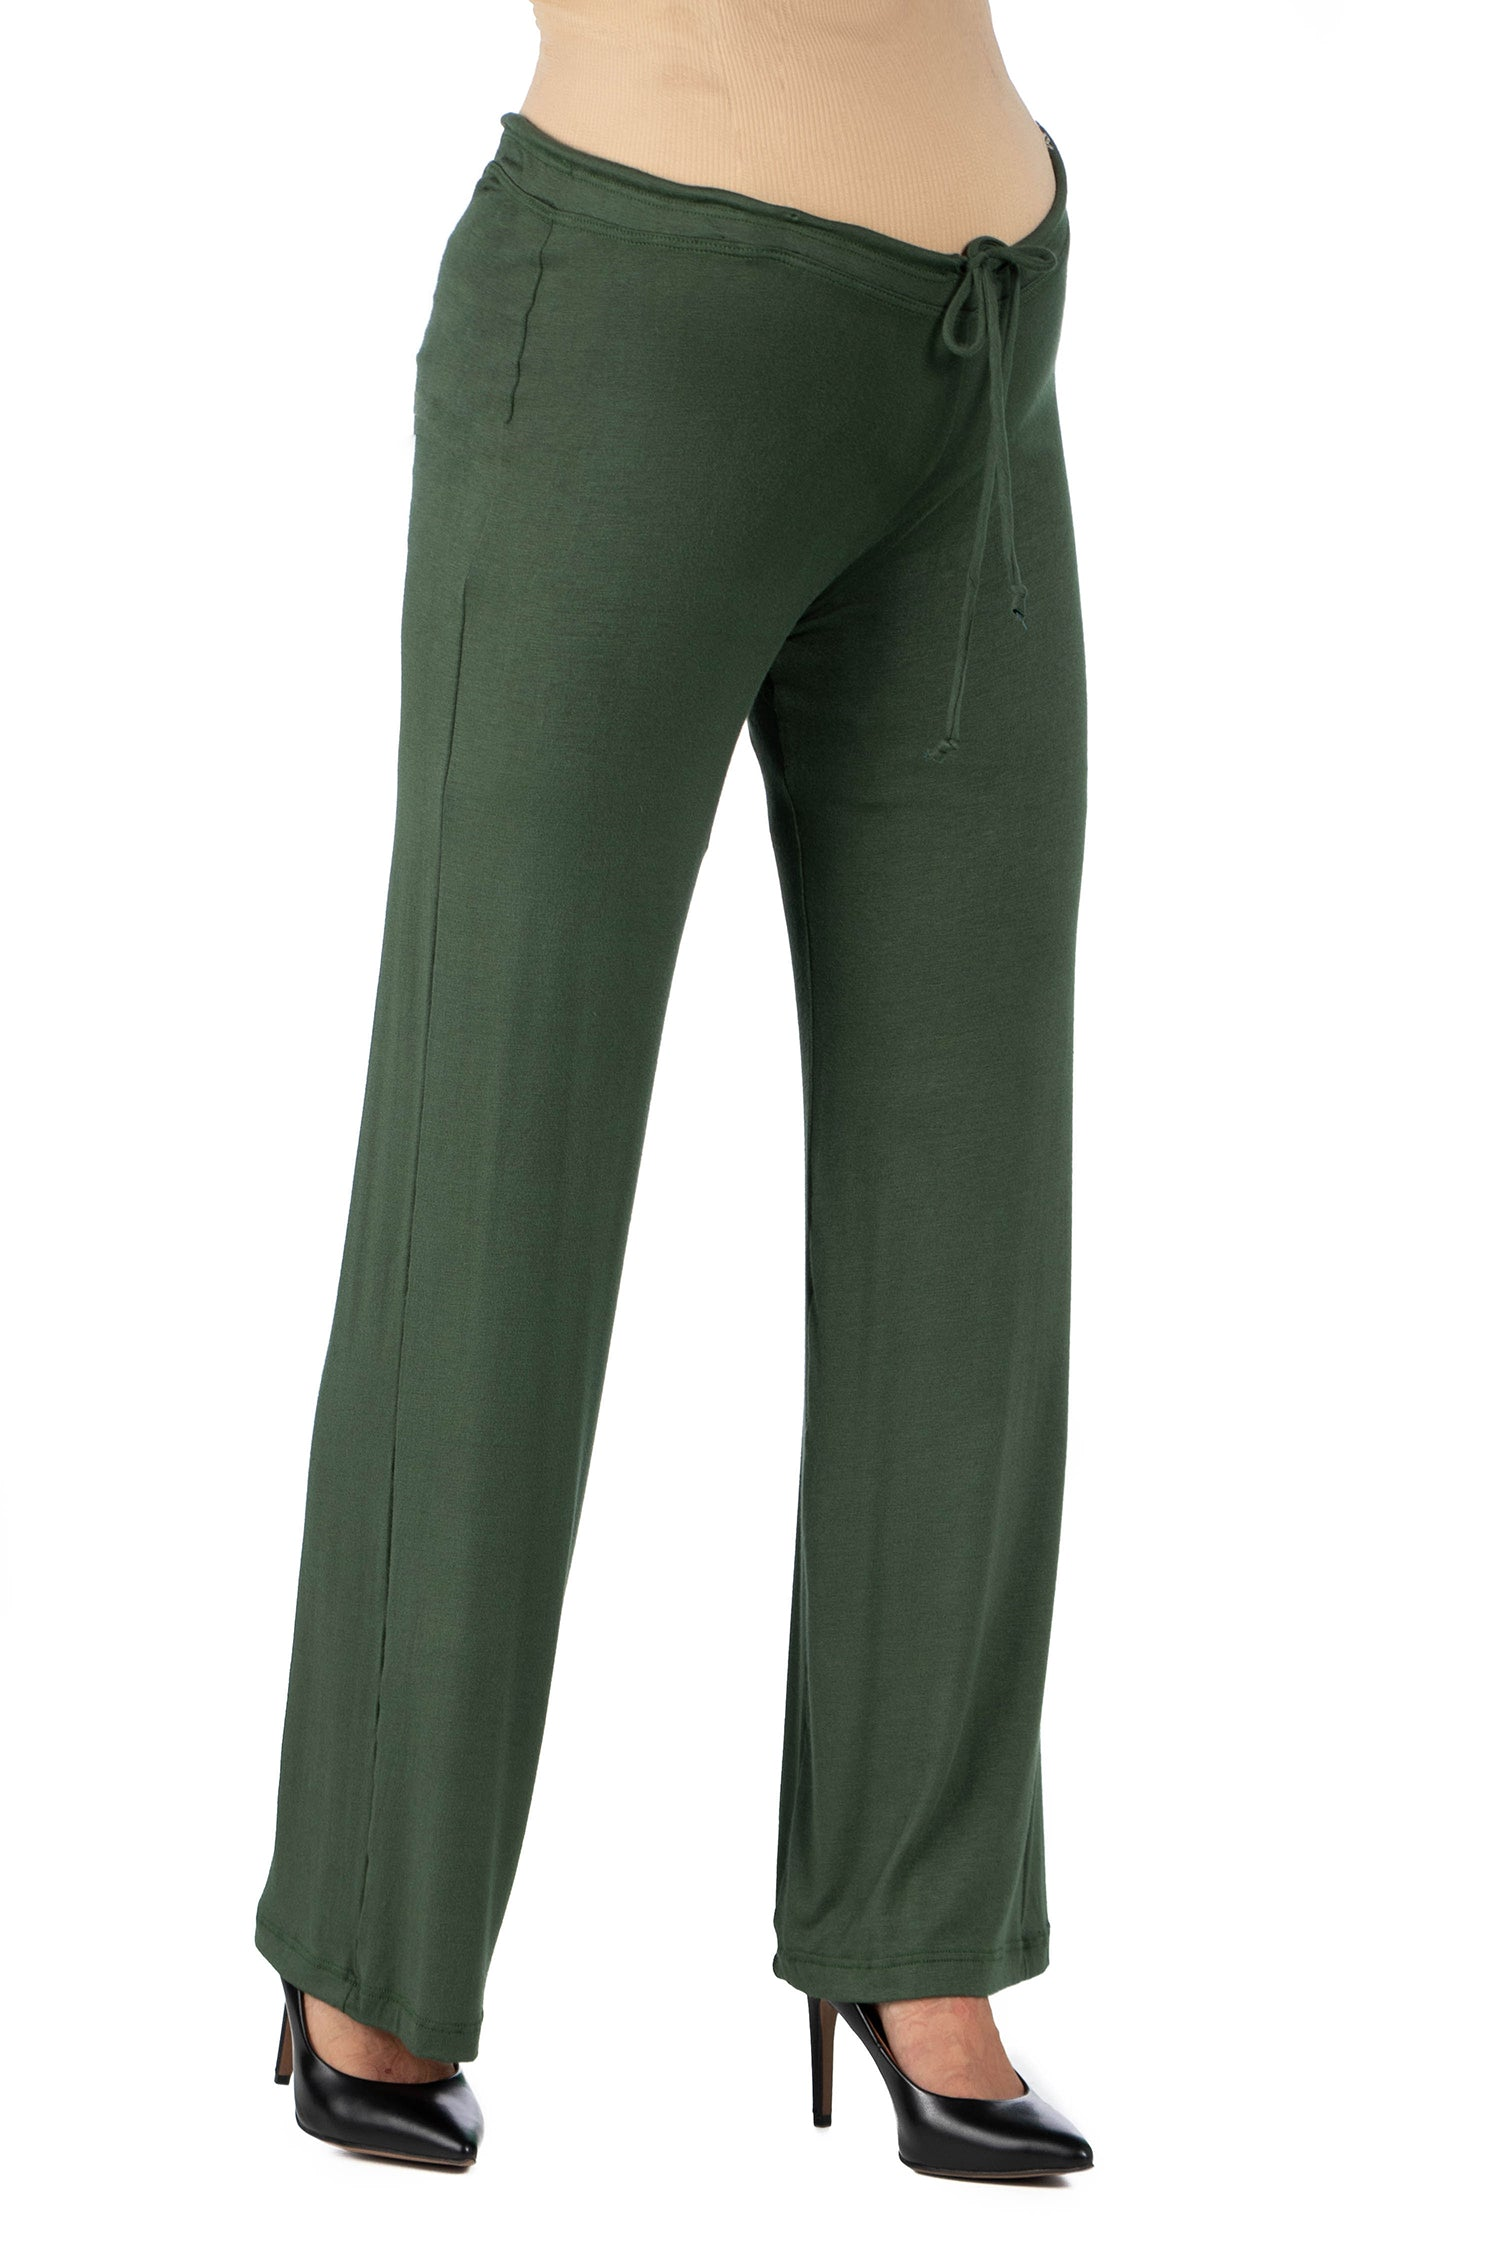 24seven Comfort Apparel Comfortable Stretch Draw String Maternity Pants-PANTS-24Seven Comfort Apparel-OLIVE-1X-24/7 Comfort Apparel